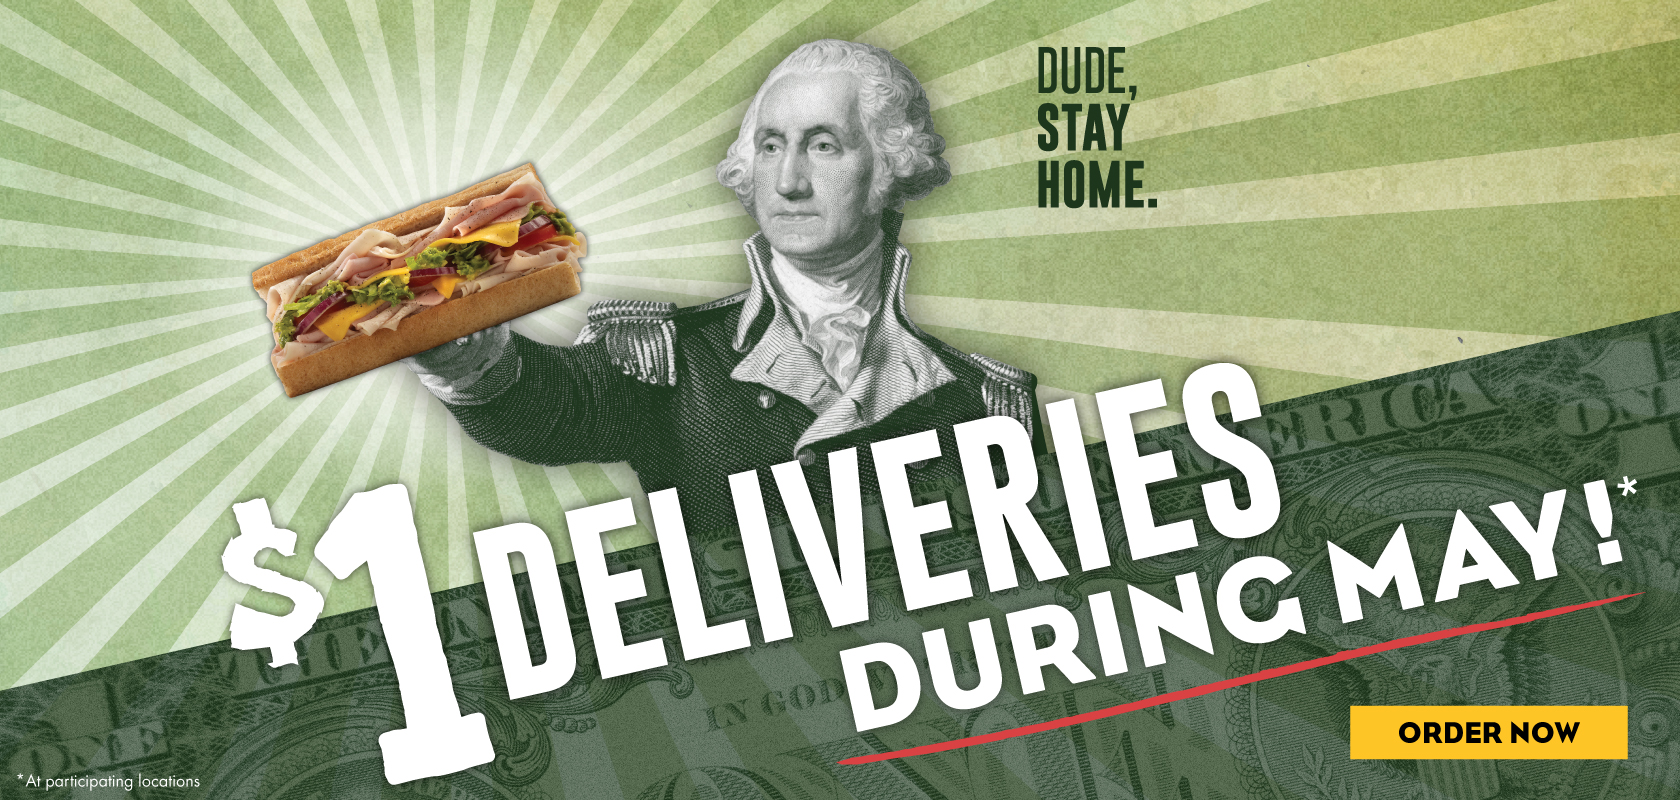 Dude, Stay Home! $1 Deliveries during May! Order Now. Available at participating locations.